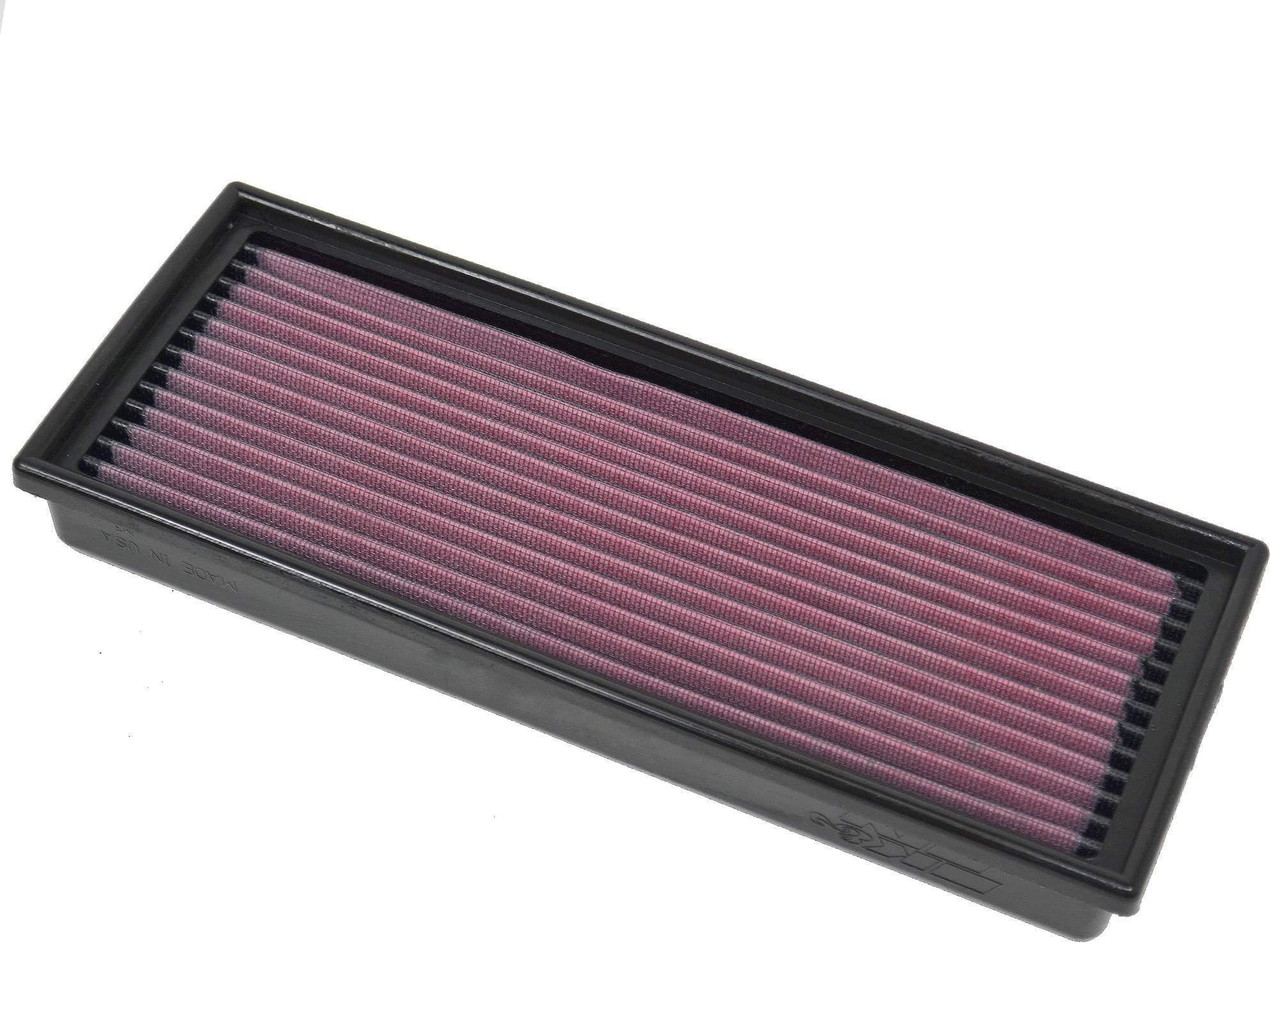 K&N Performance Air Filter - with Fuel Injection